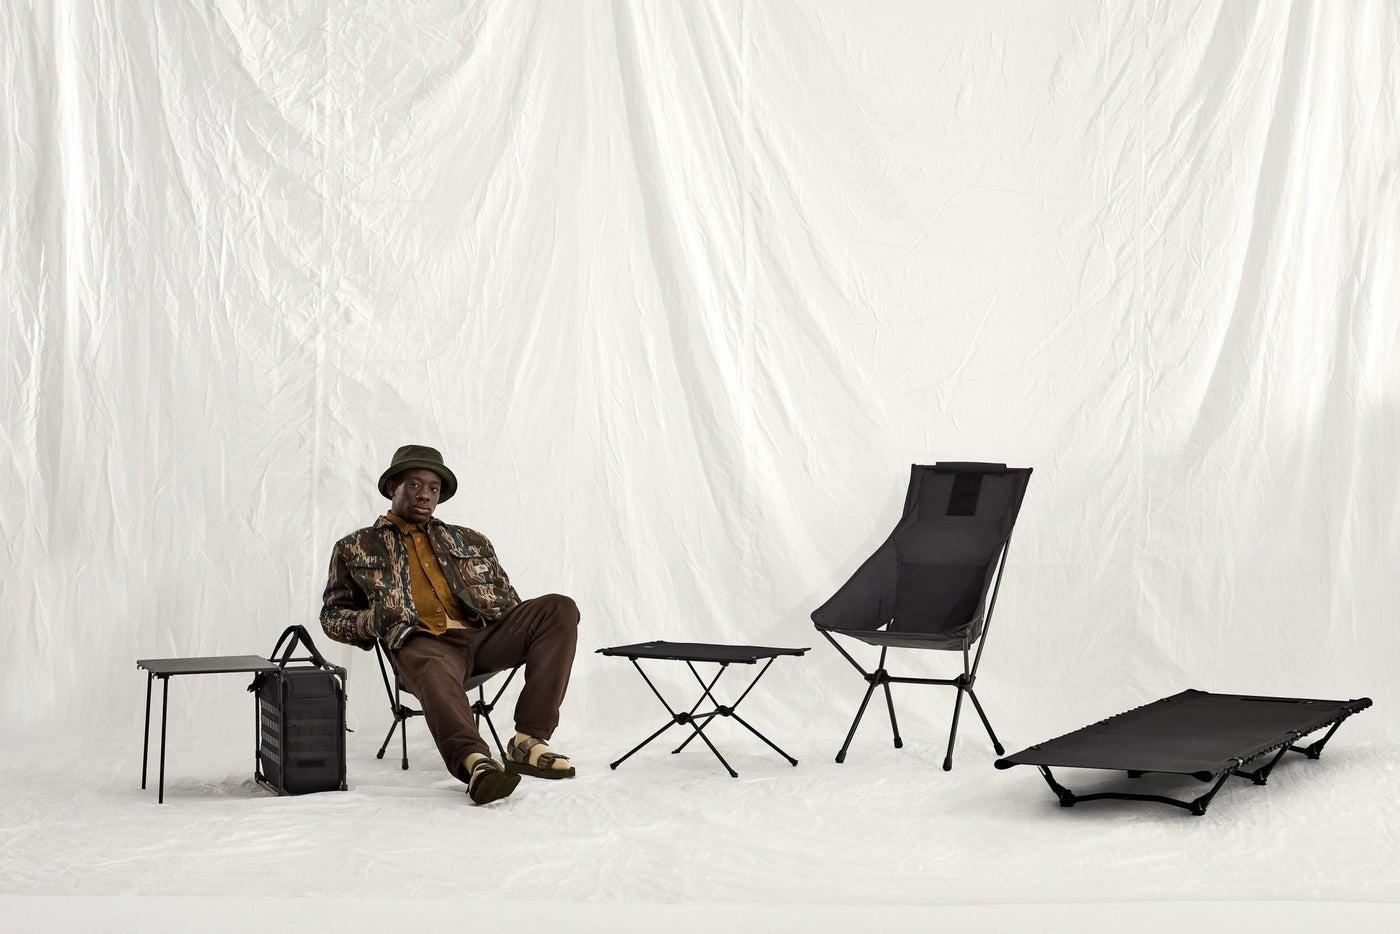 Helinox's field office (far left) is part of the new Tactical line that also includes a table, two chair styles and a cot